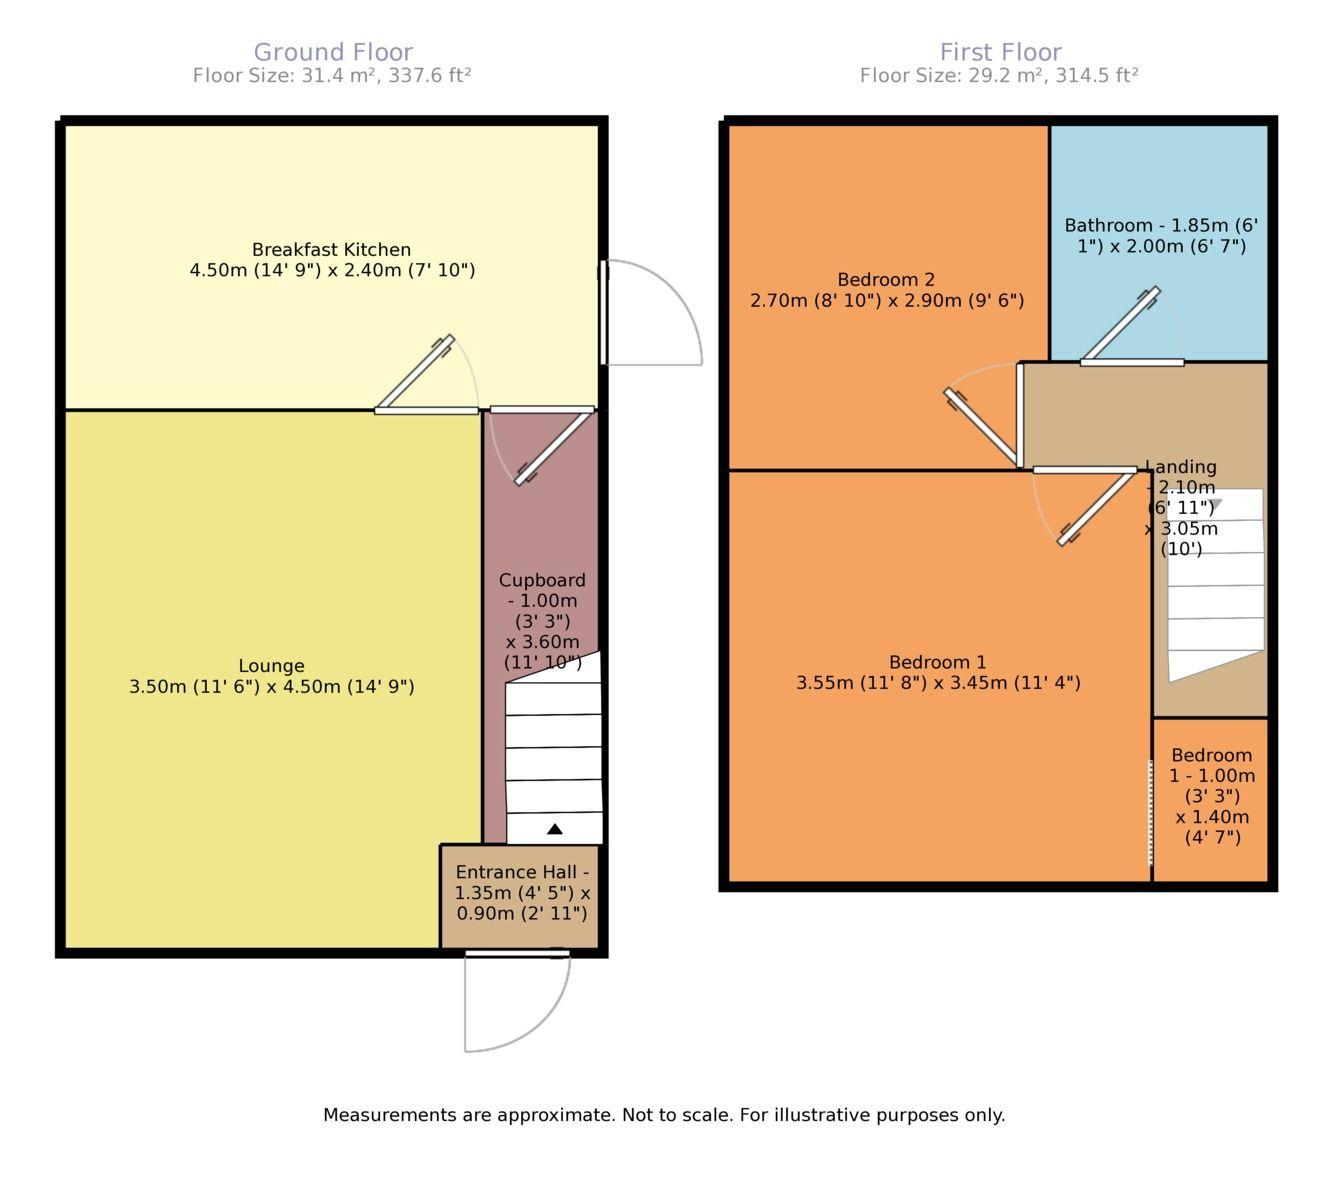 2 bedroom houses for sale in denton manchester your move 30560 2 bedroom houses for sale movoto